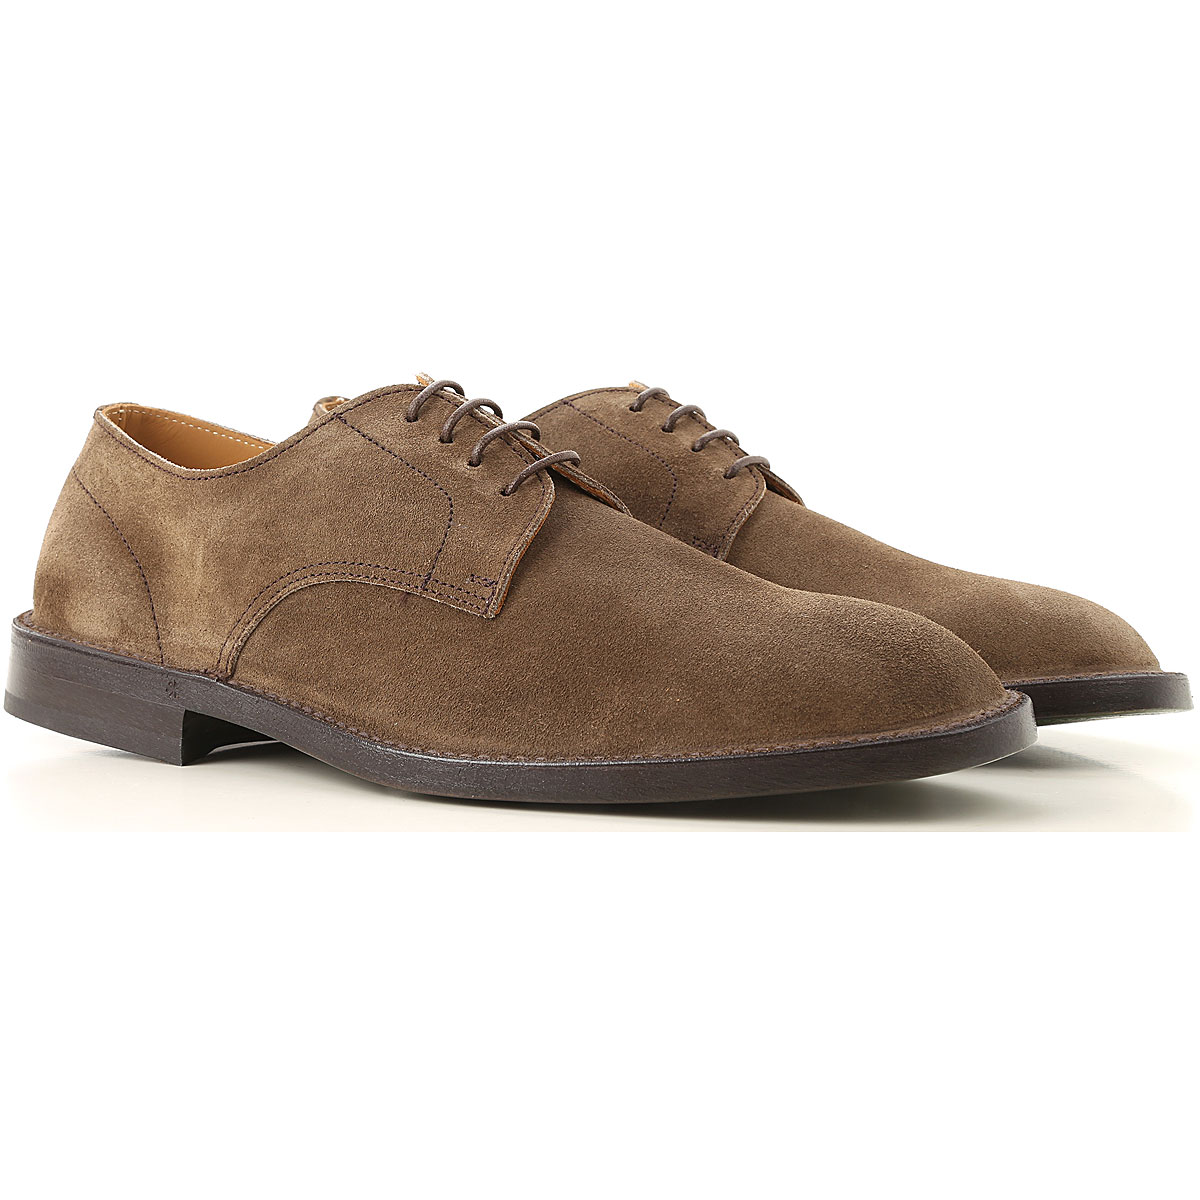 Green George Lace Up Shoes for Men Oxfords, Derbies and Brogues On Sale in Outlet, Mole, Suede leather, 2019, 11 9